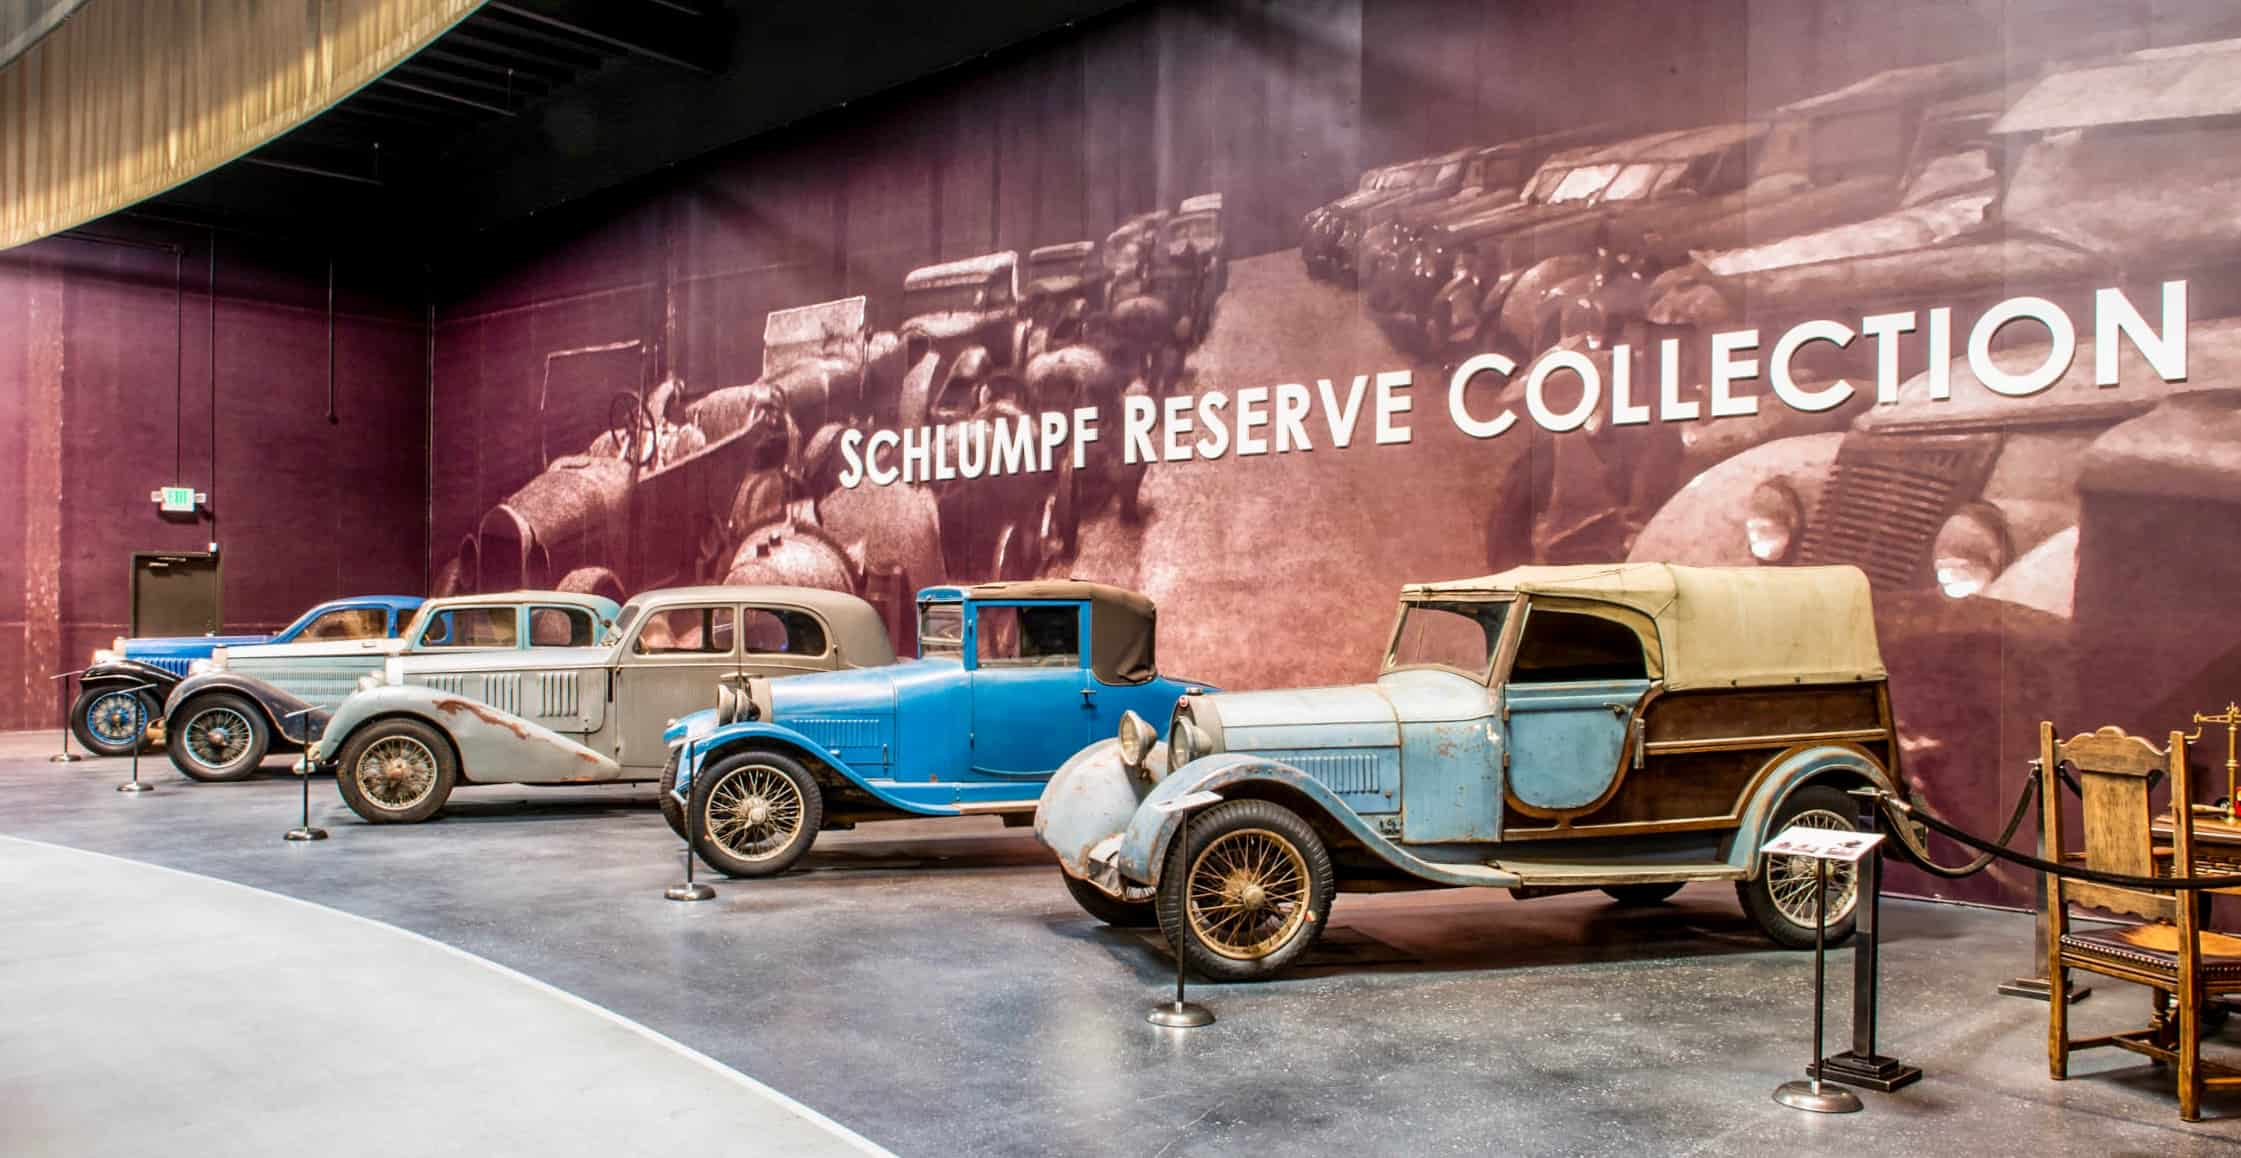 Bugattis, Nothing fishy about this story: A tale of 2 museums and a bunch of Bugattis, ClassicCars.com Journal